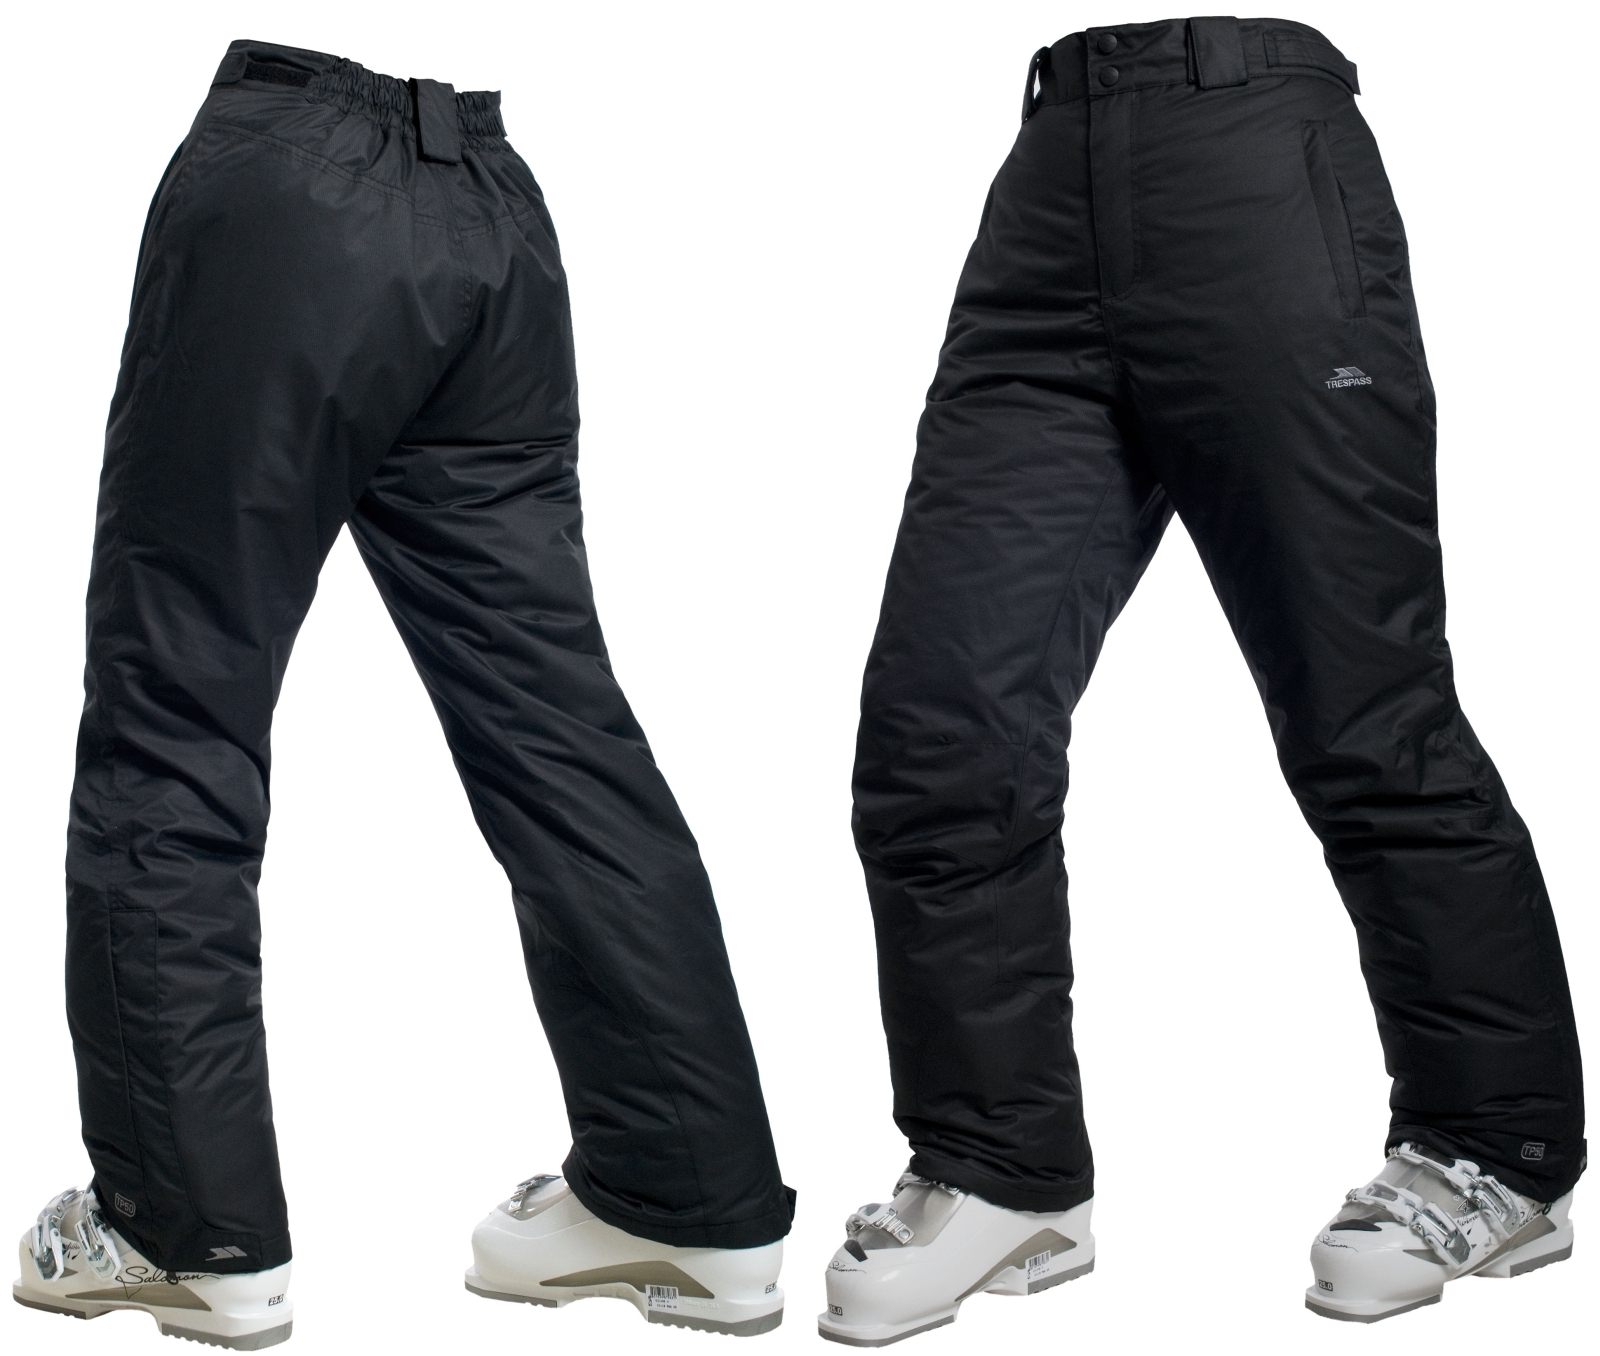 Waterproof Training Pants. Baby. Diapering. Diapers. Training Pants. Product - Parent's Choice Training Pants for Boys (Choose Size and Count) Best Seller. Product Image. Price Product - American Baby Company Dappi Waterproof Nylon Diaper Pants (Set of 2) Product Image. Price $ 4. 99 .